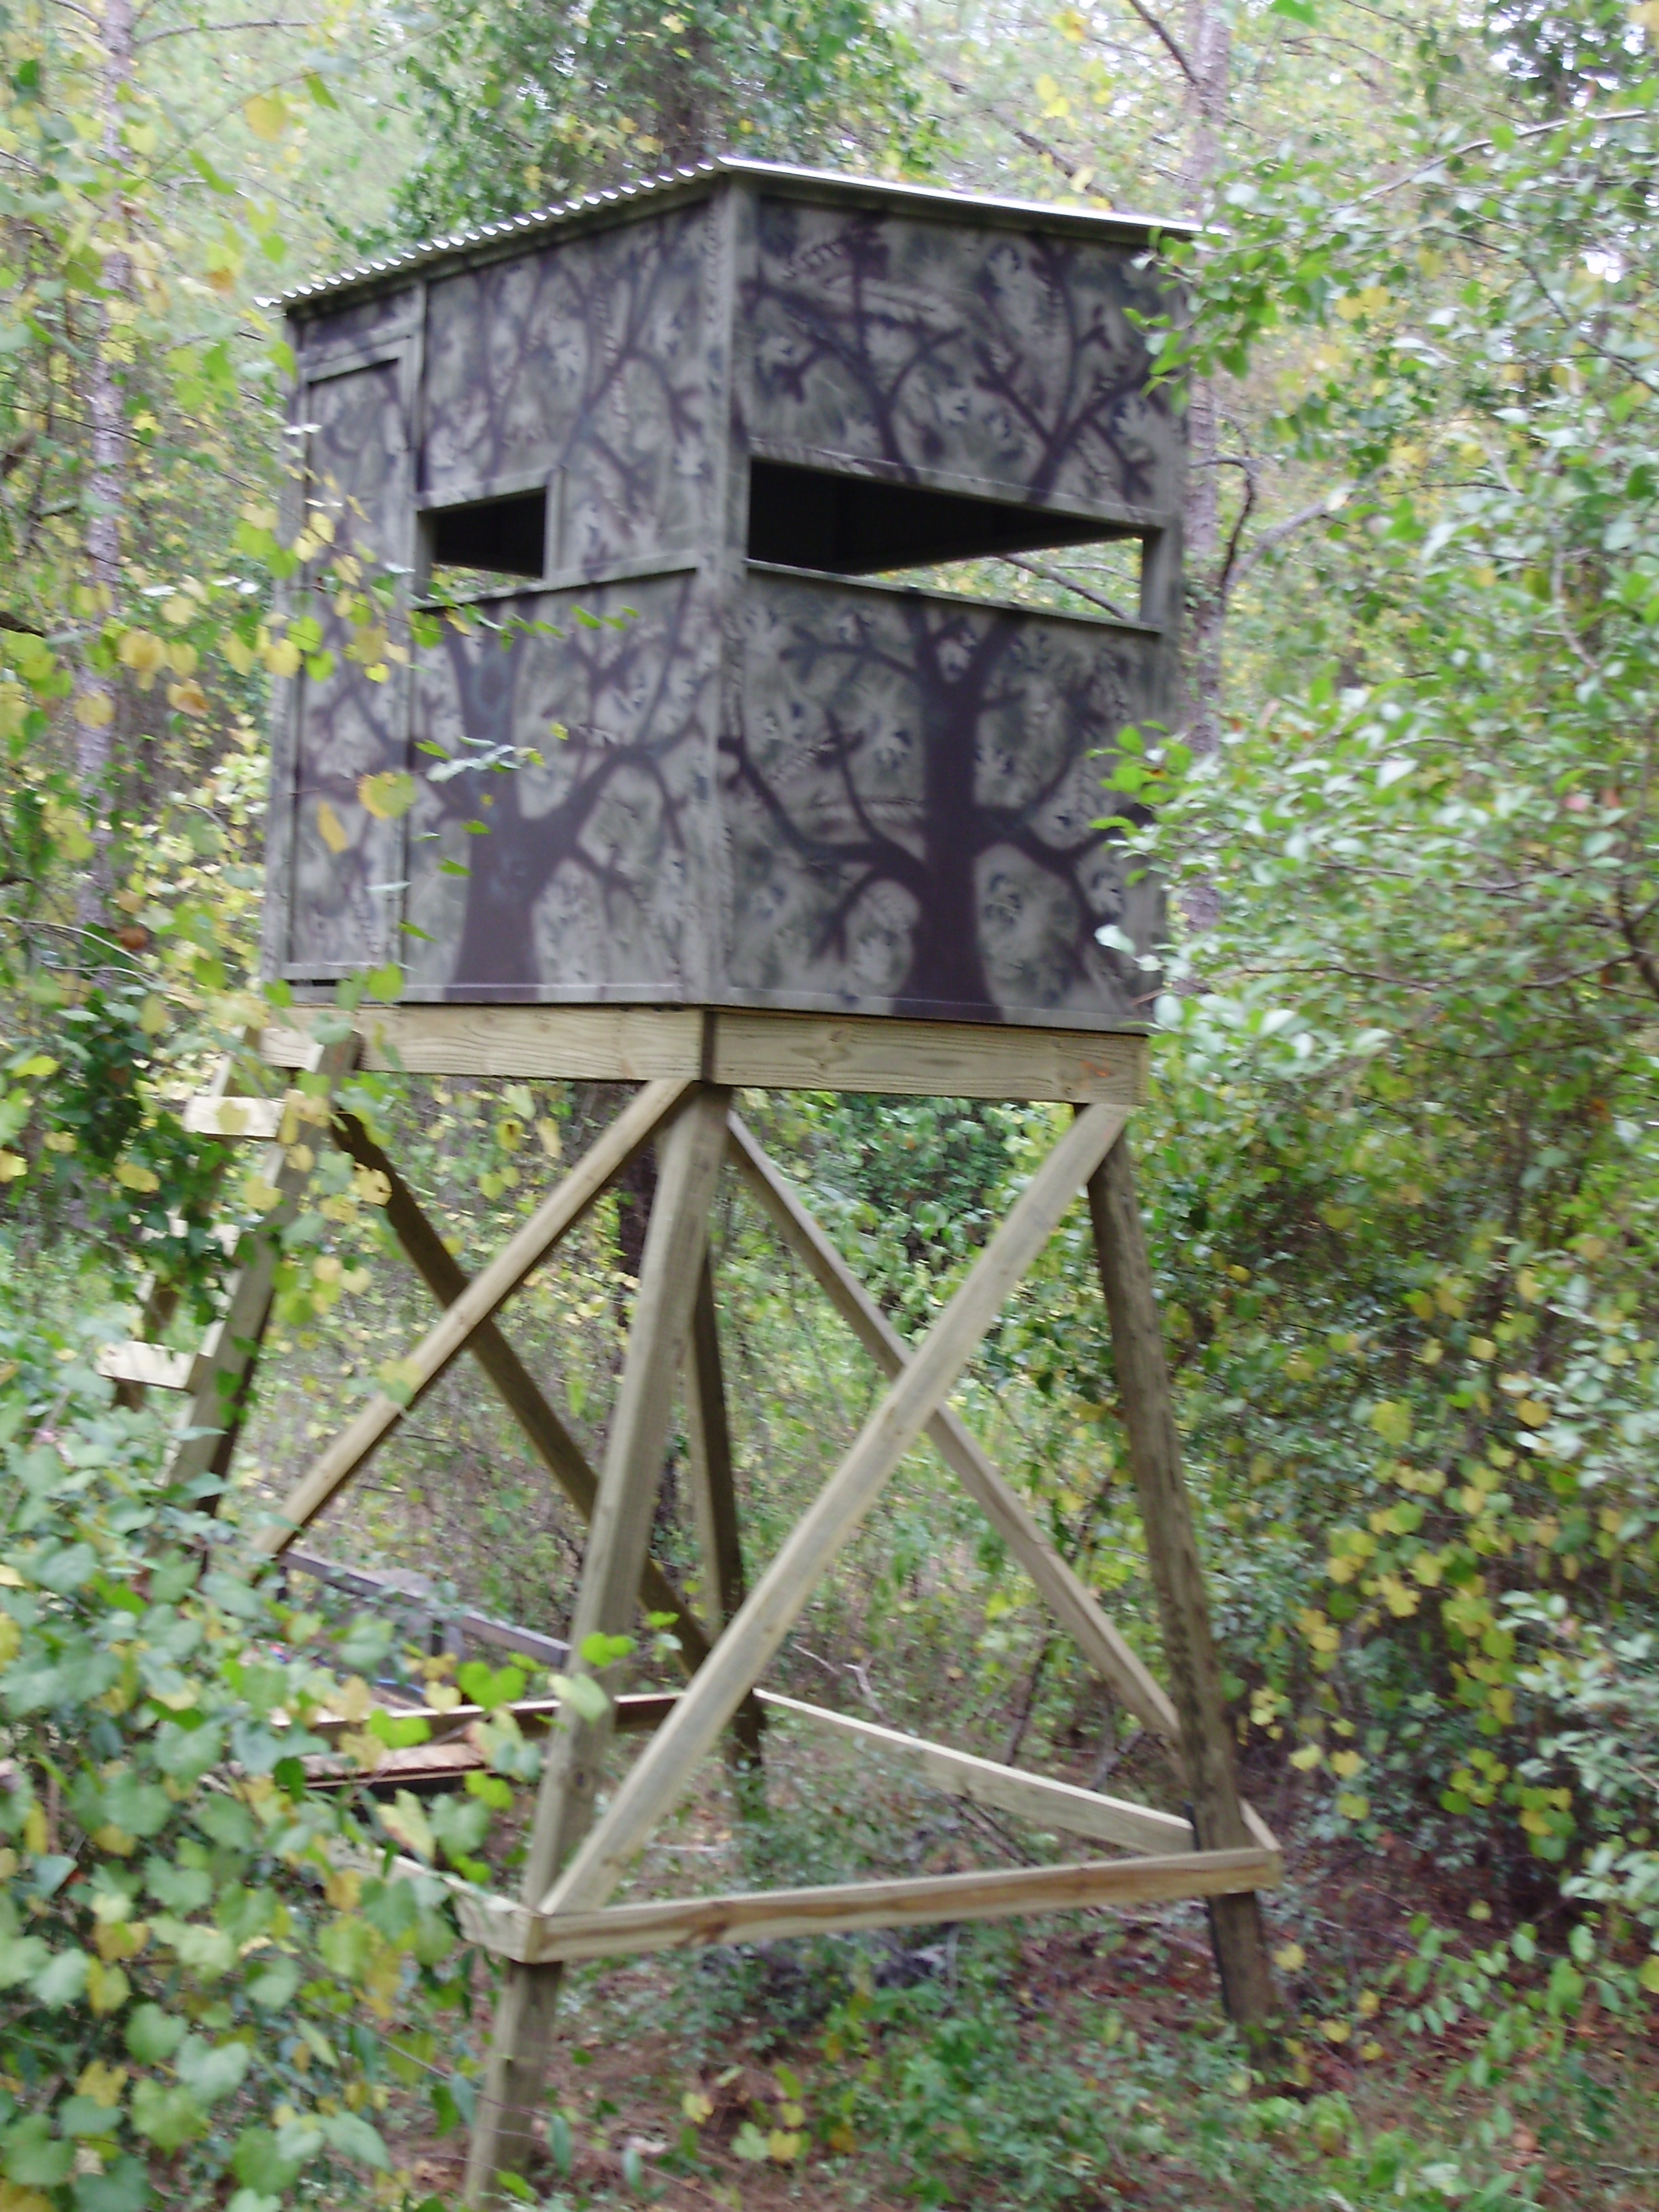 Wood Deer Stands Plans Free Download wistful29gsg : deer stand 006 from wistful29gsg.wordpress.com size 2448 x 3264 jpeg 1948kB